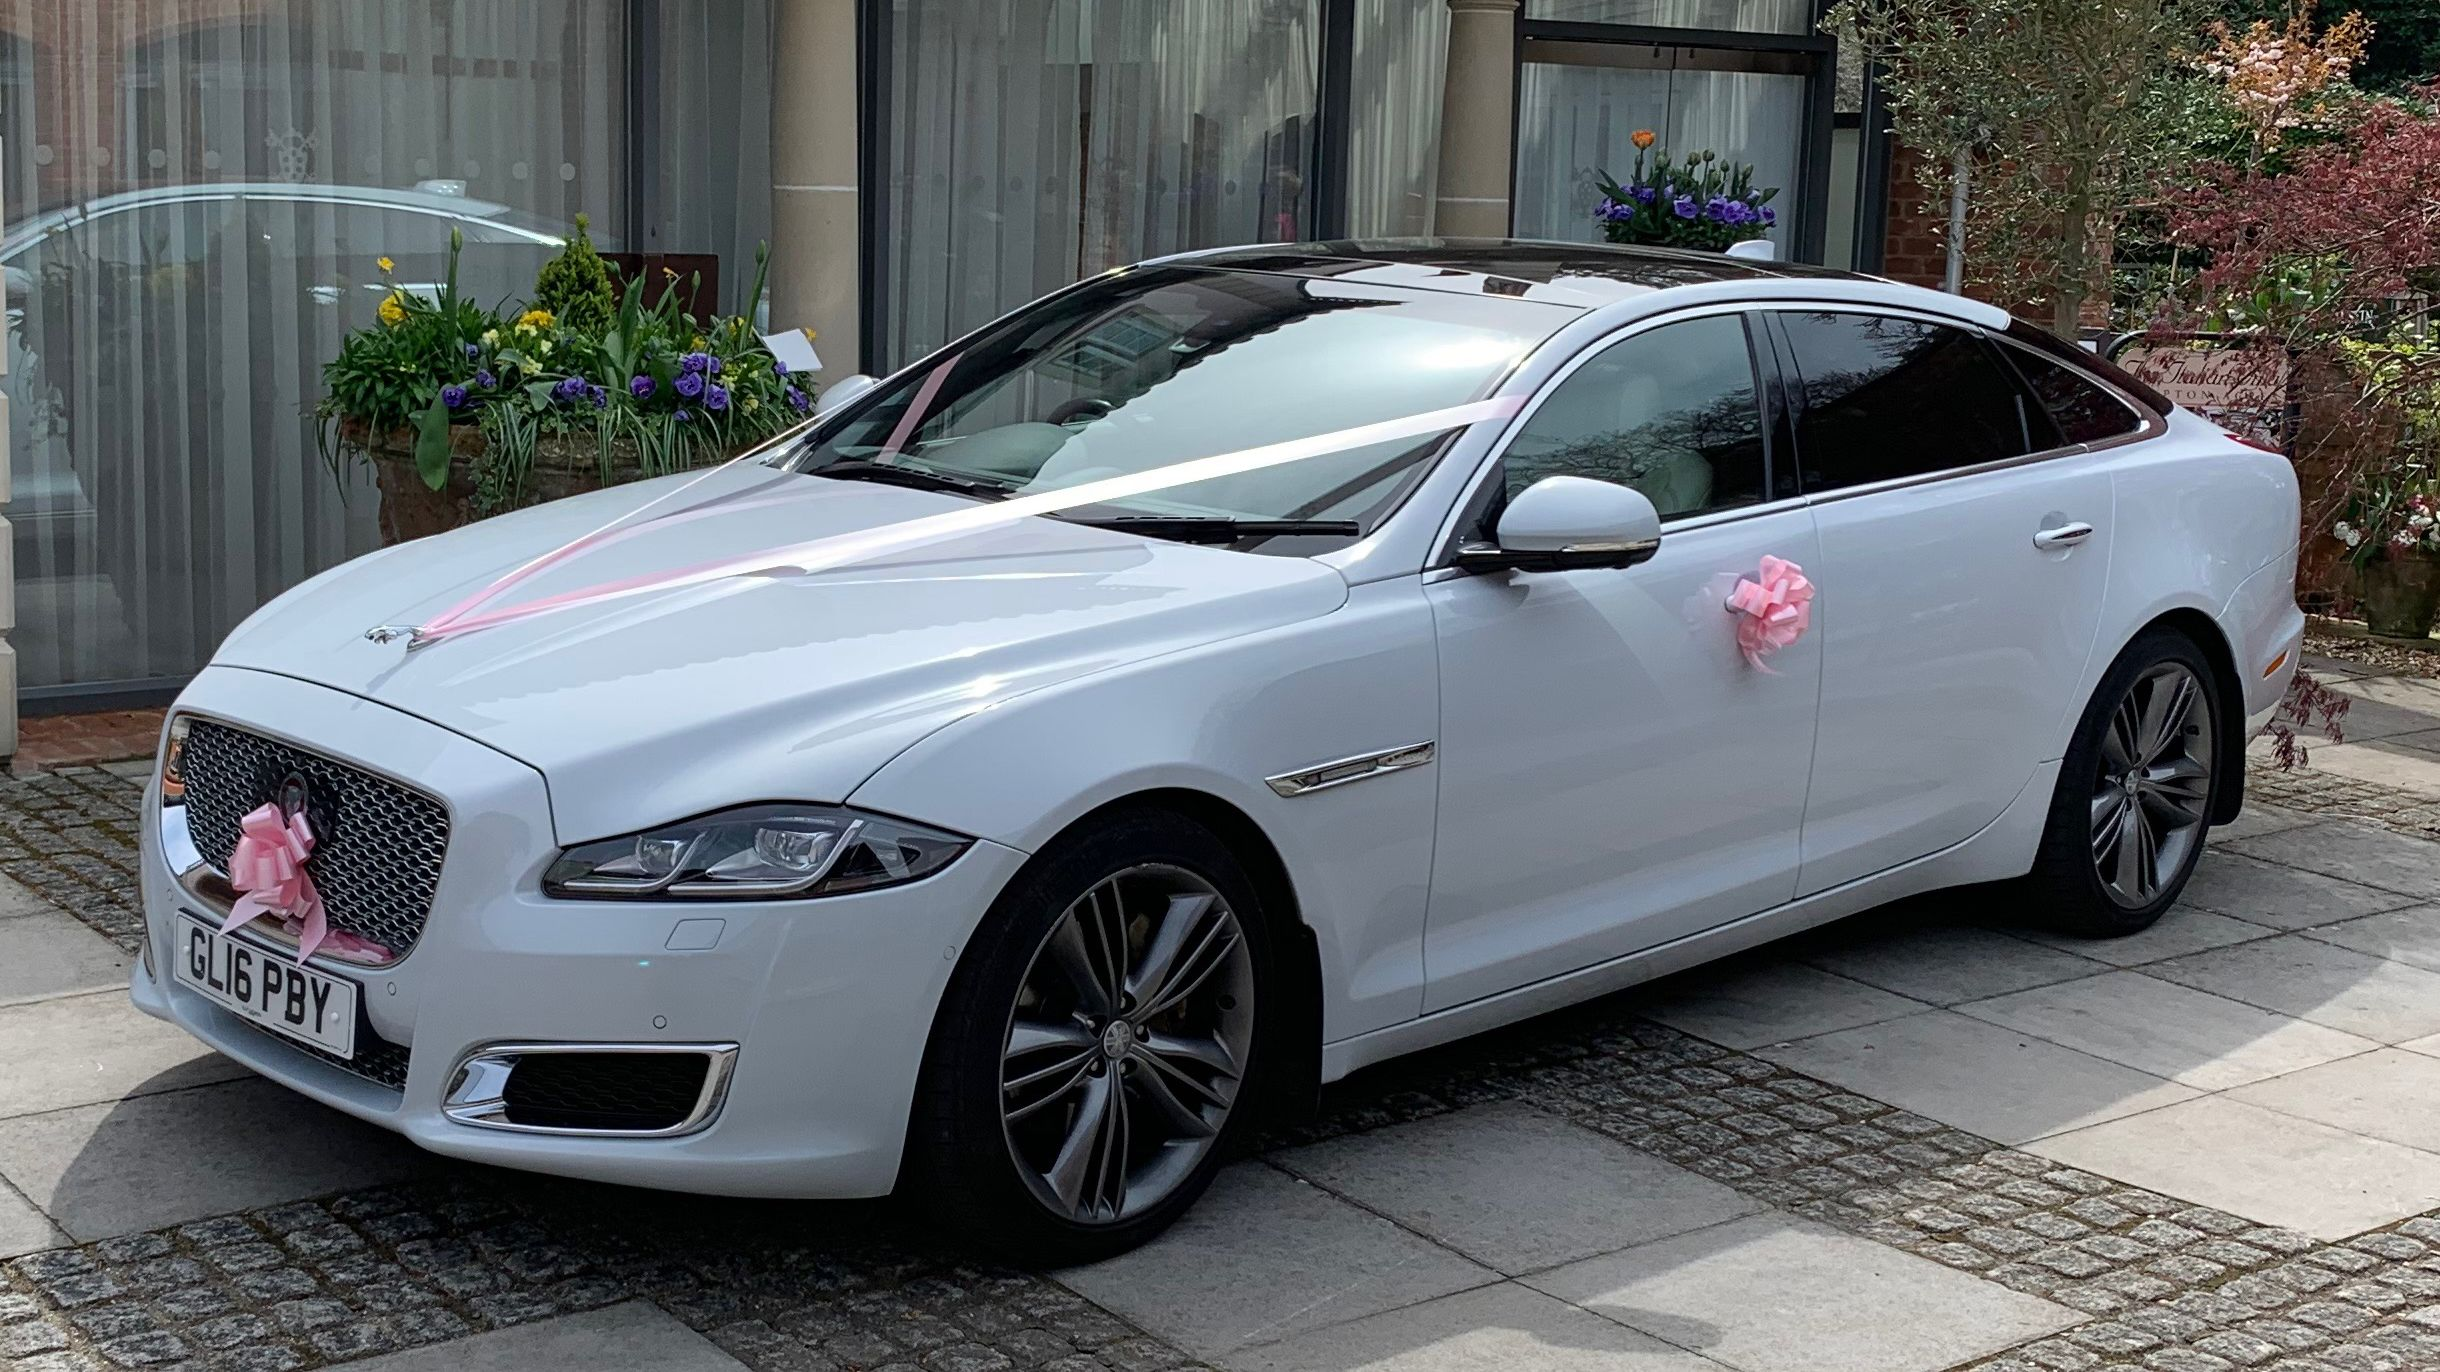 Brand New Jaguar Autobiography Available To Hire For Weddings Extended Wheel Base Tv Cream Leather Interior Reclining Sea Jaguar Xj Classic Cars New Jaguar